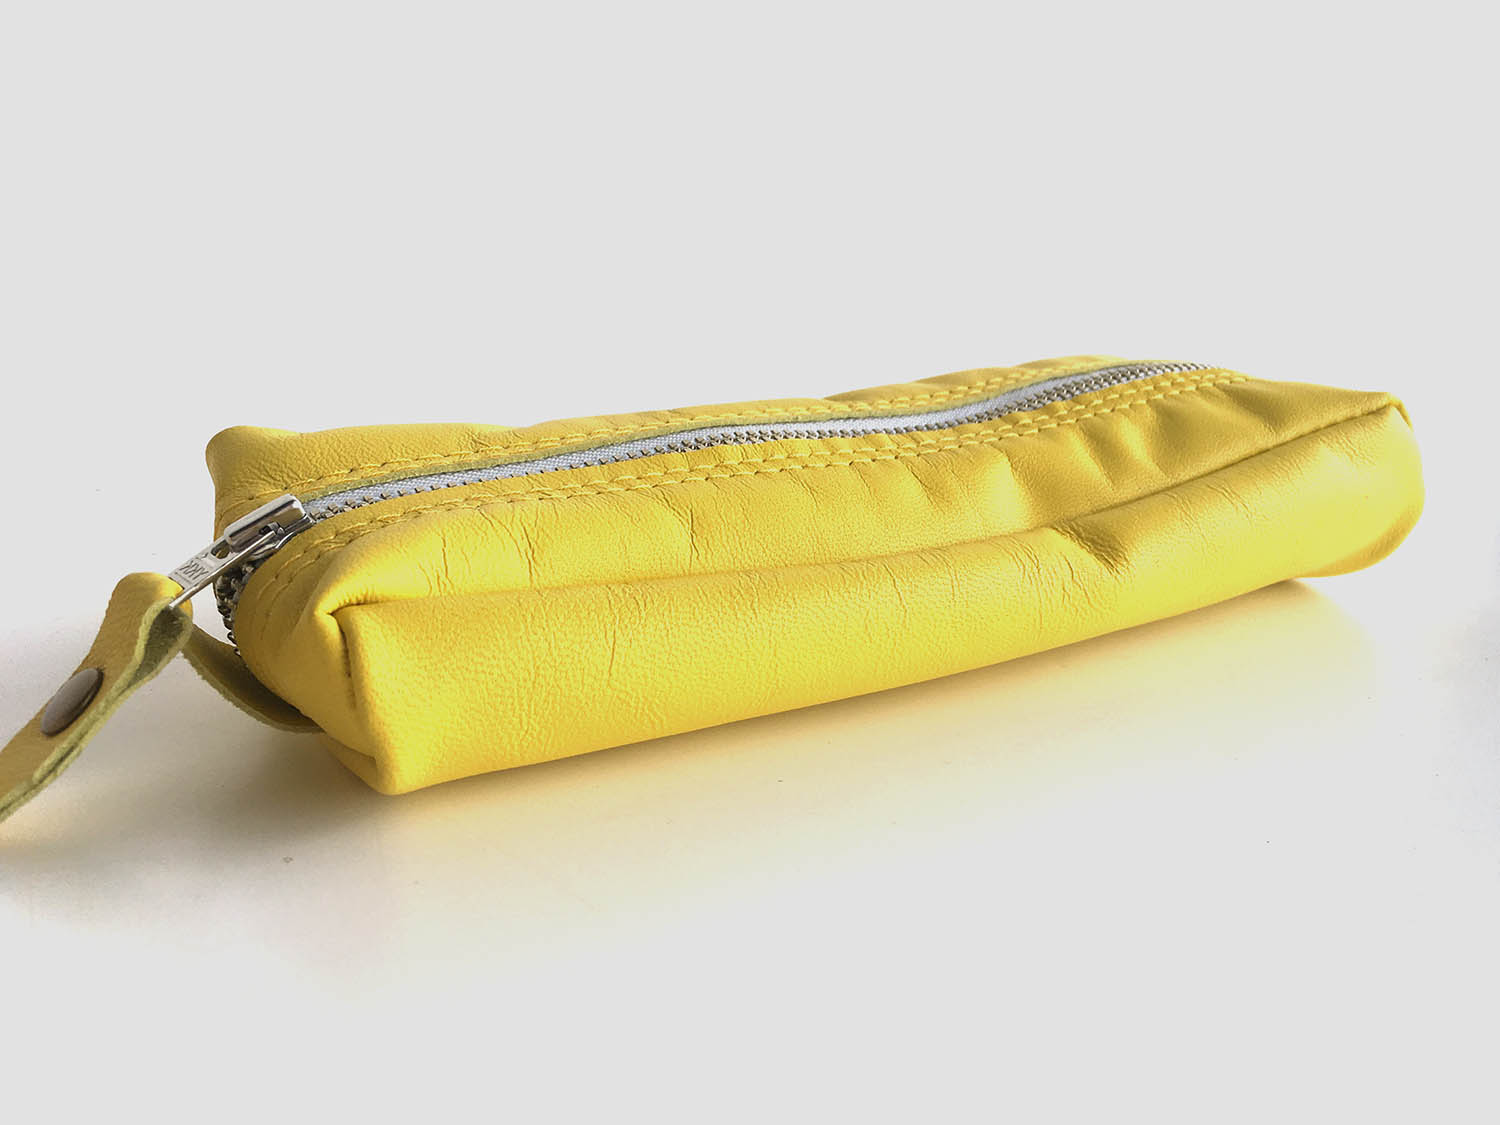 yellow leather pencil case with white metal zip